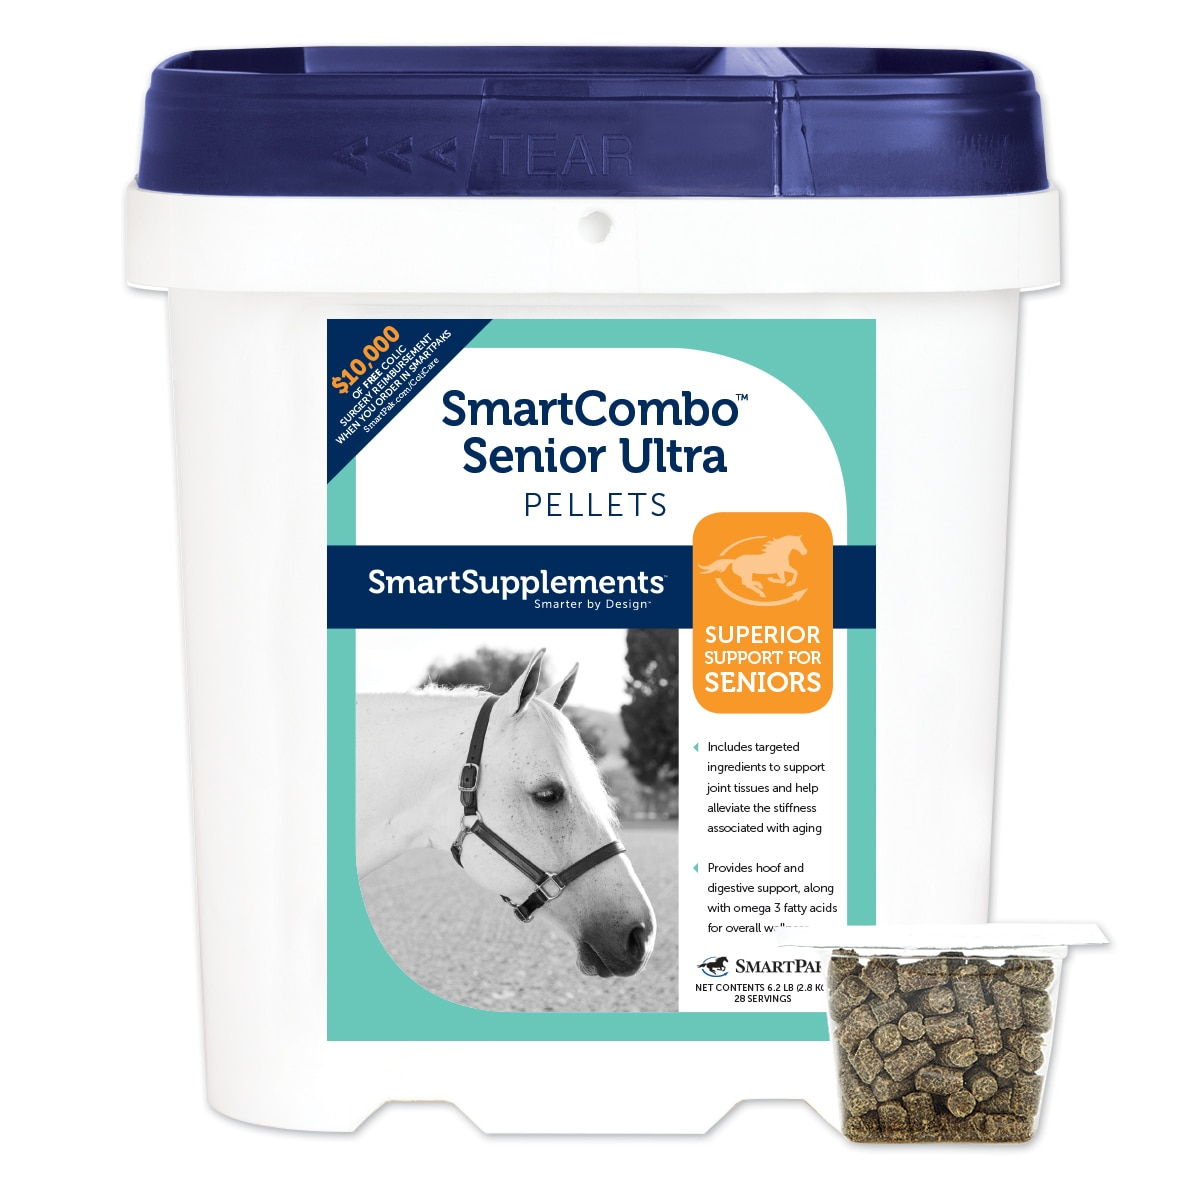 SmartCombo™ Senior Ultra Pellets